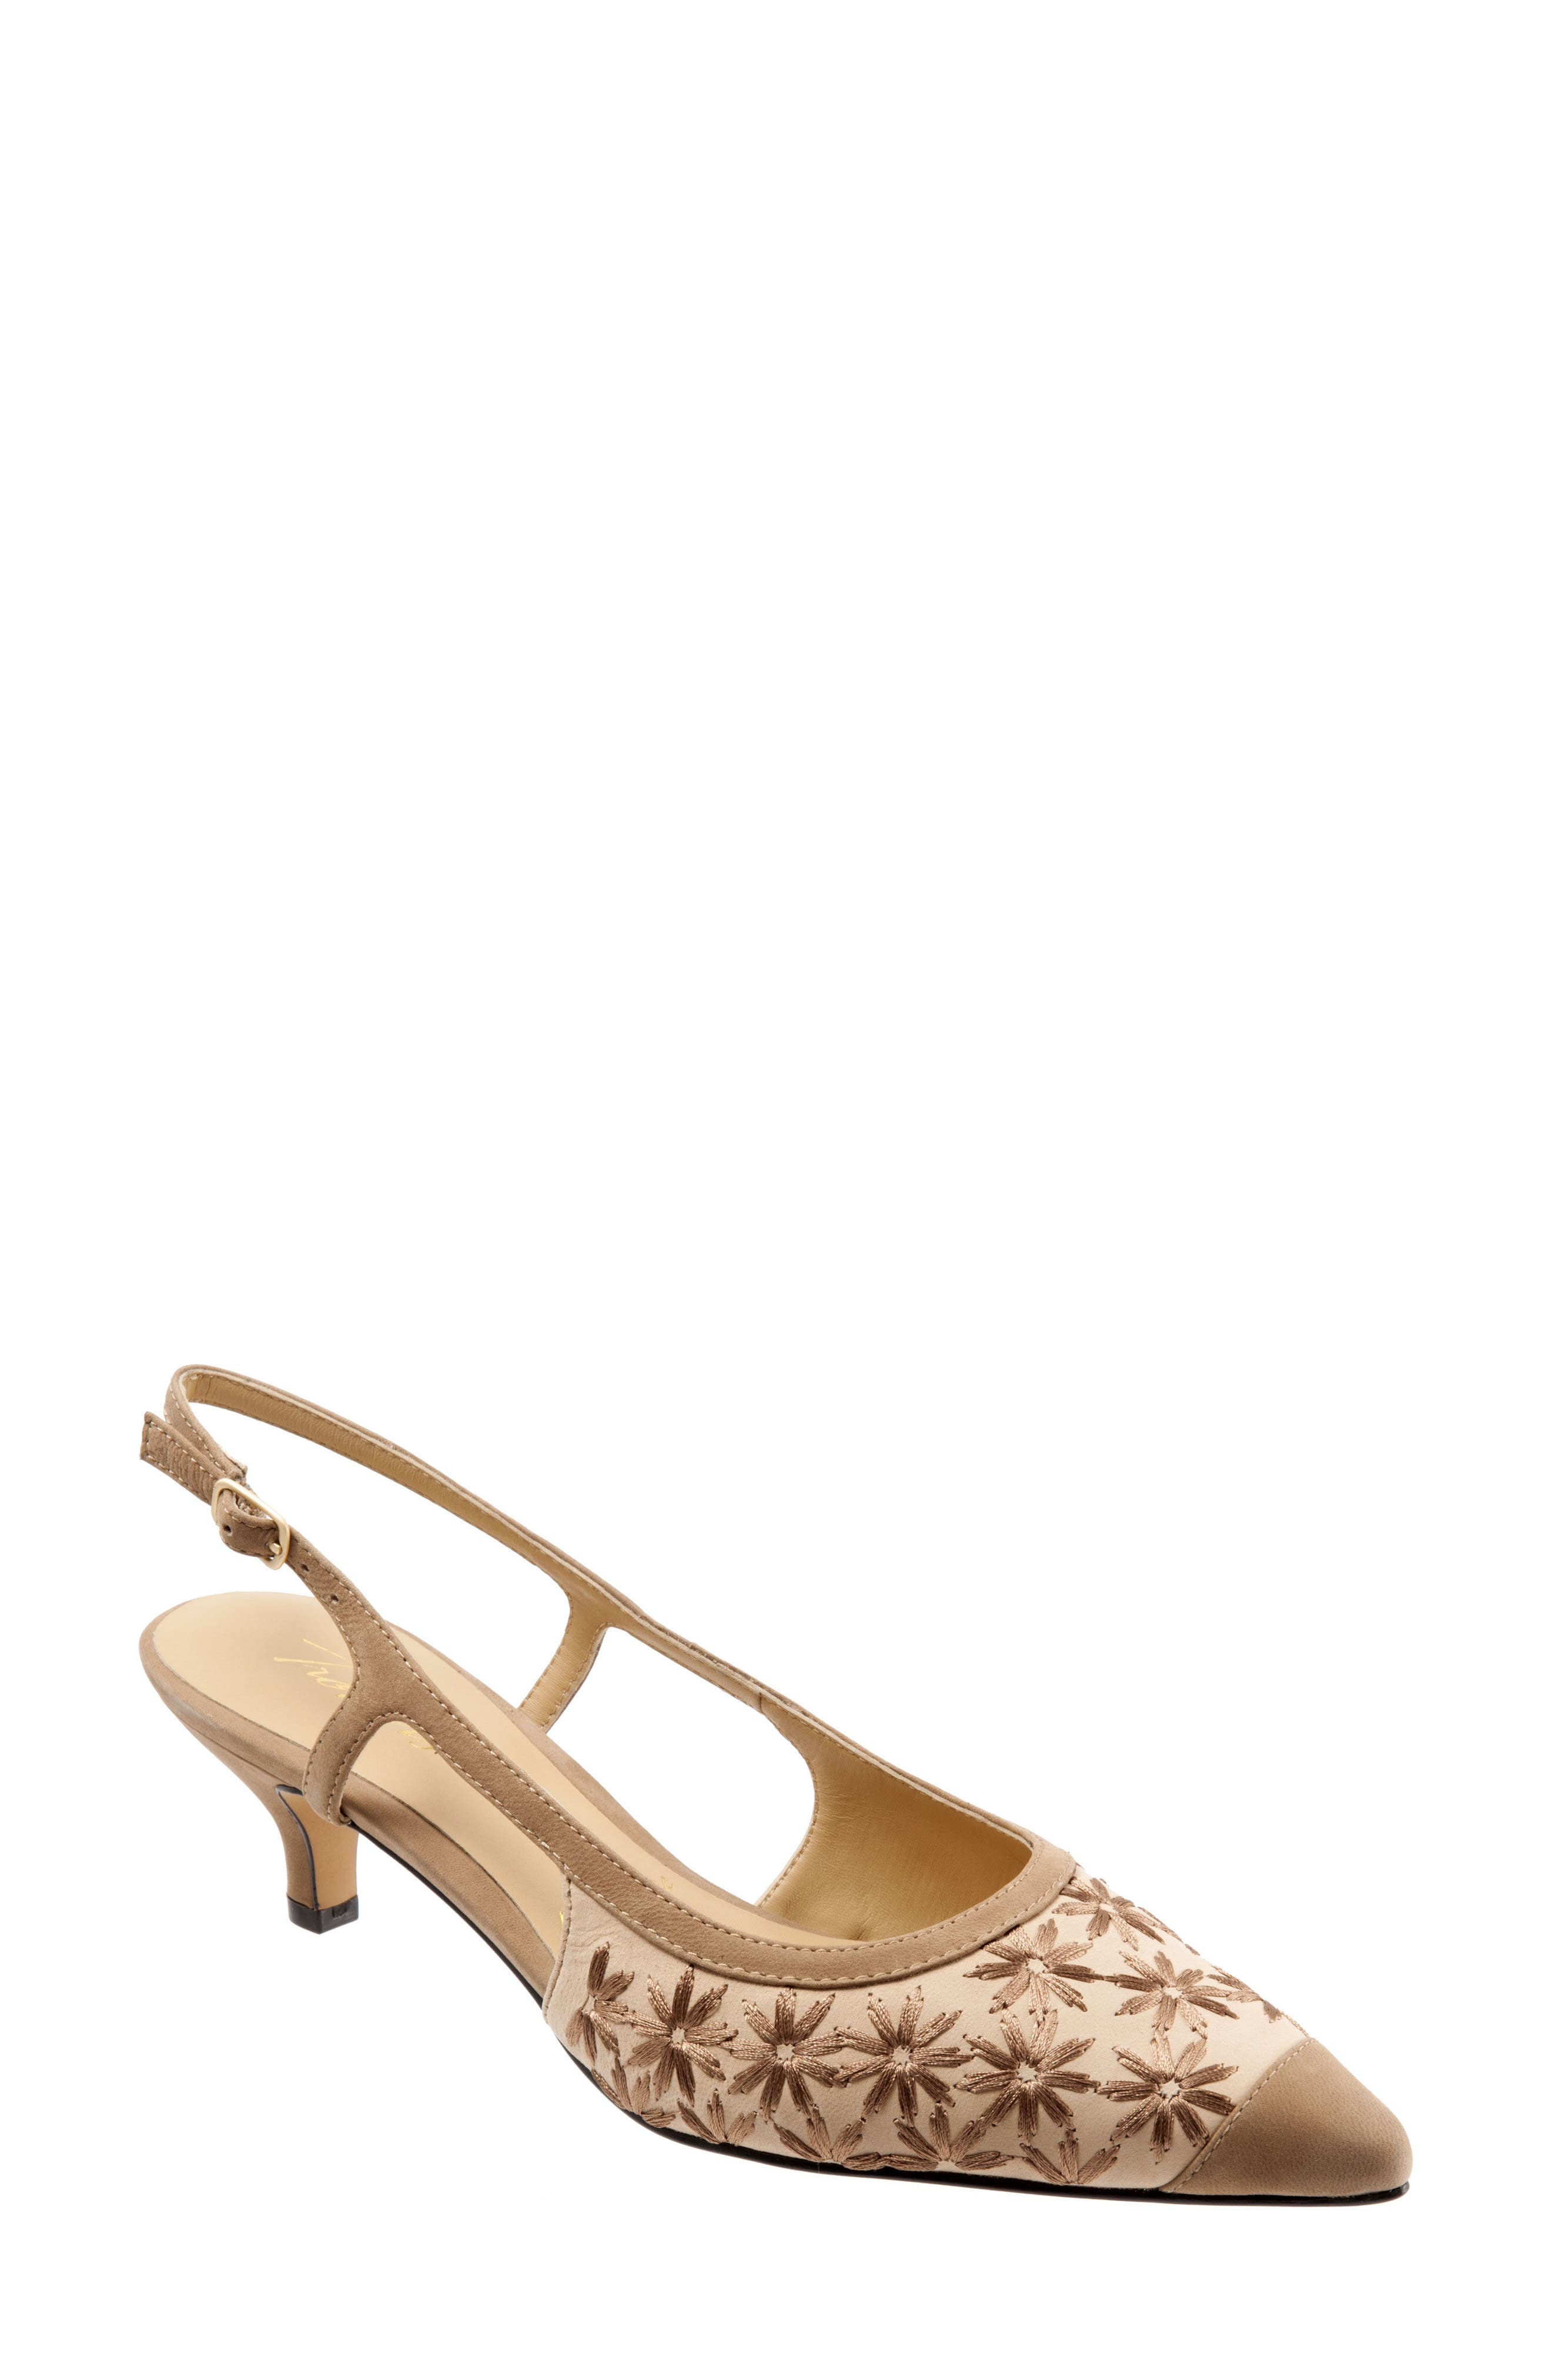 Trotters 'Kimberly' Woven Leather Slingback Pump (Women)